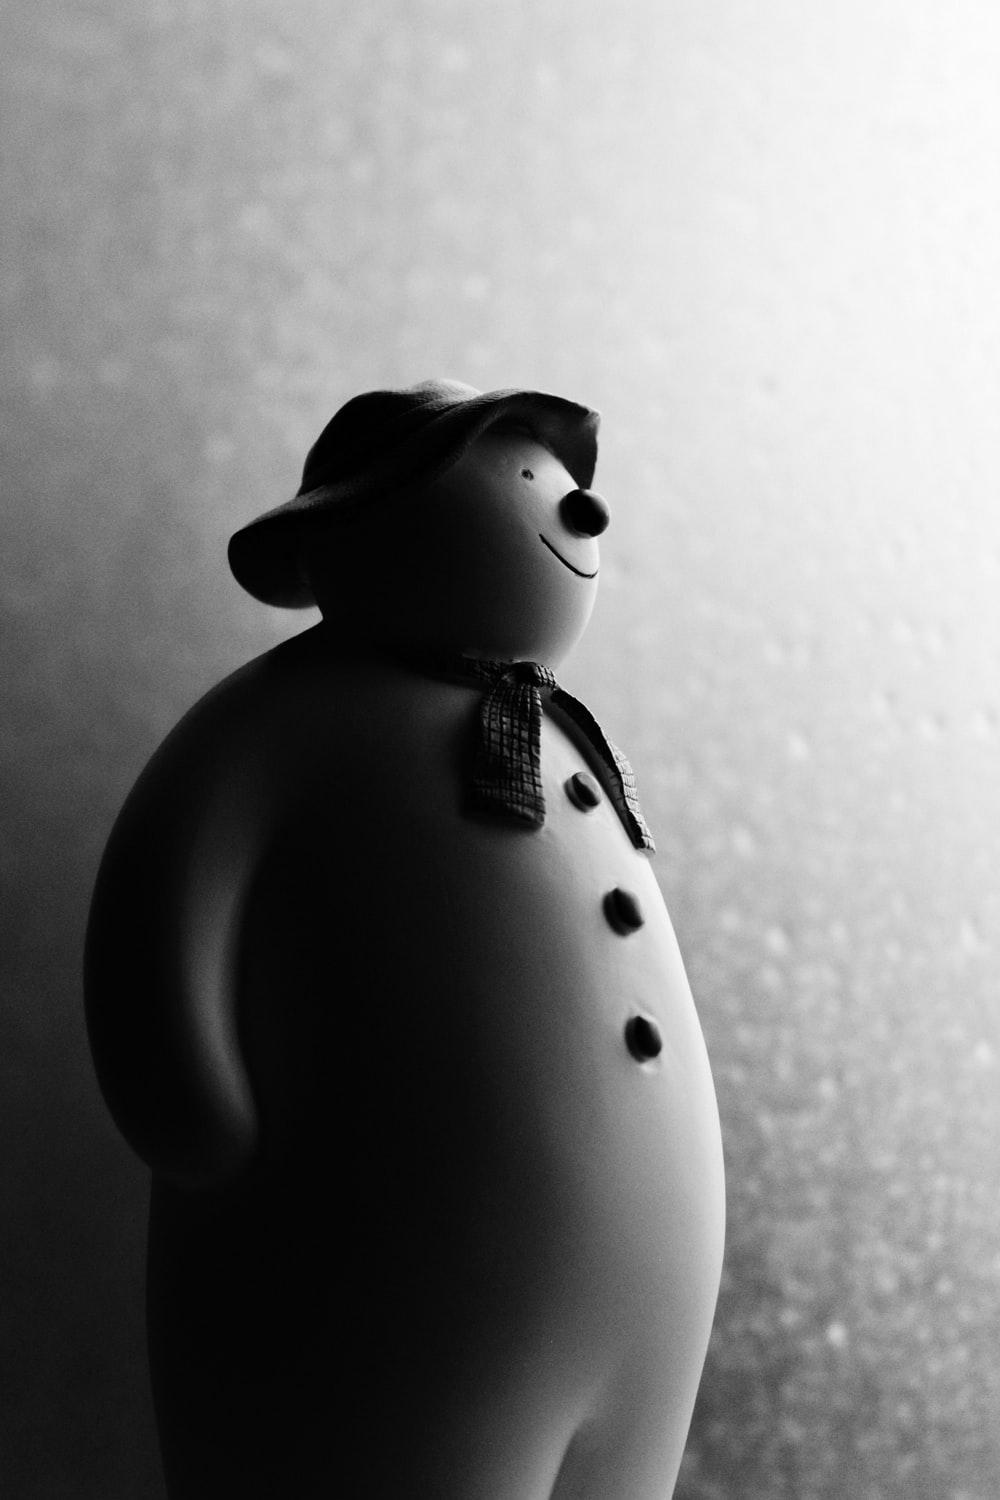 grayscale photography of snowman figurine